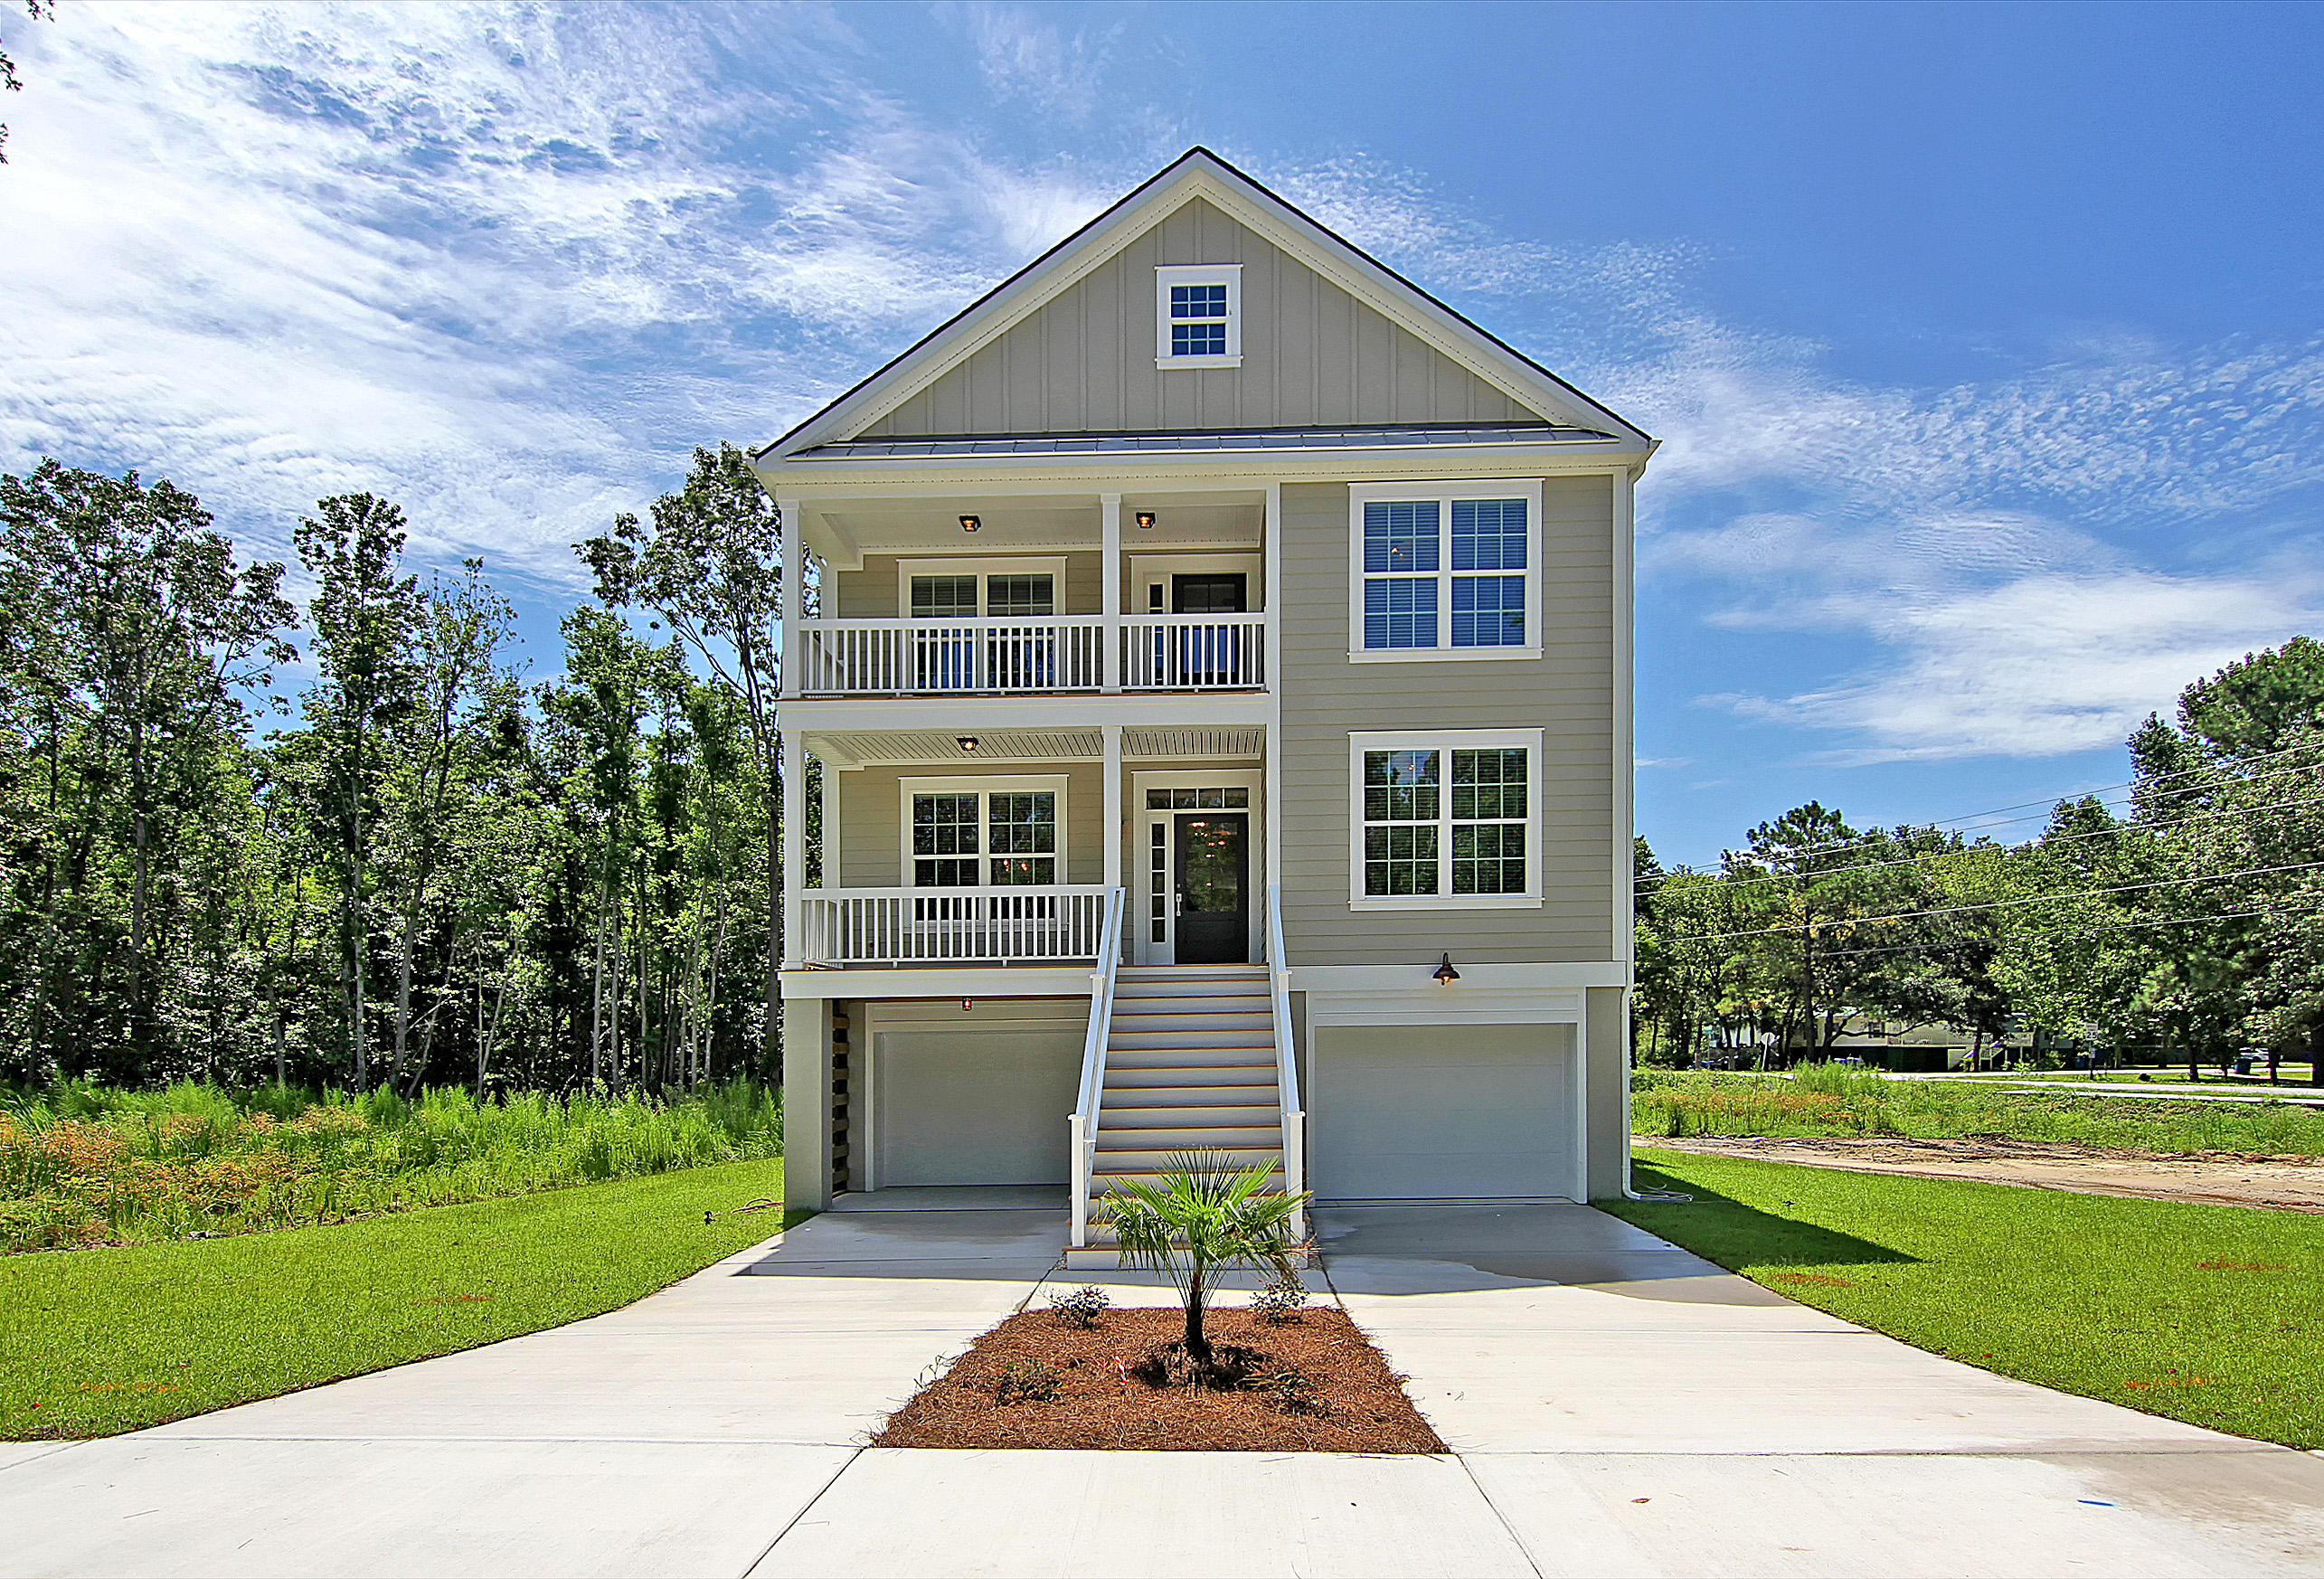 Wando Forest Homes For Sale - 3705 Sandy Gate Ln, Mount Pleasant, SC - 66